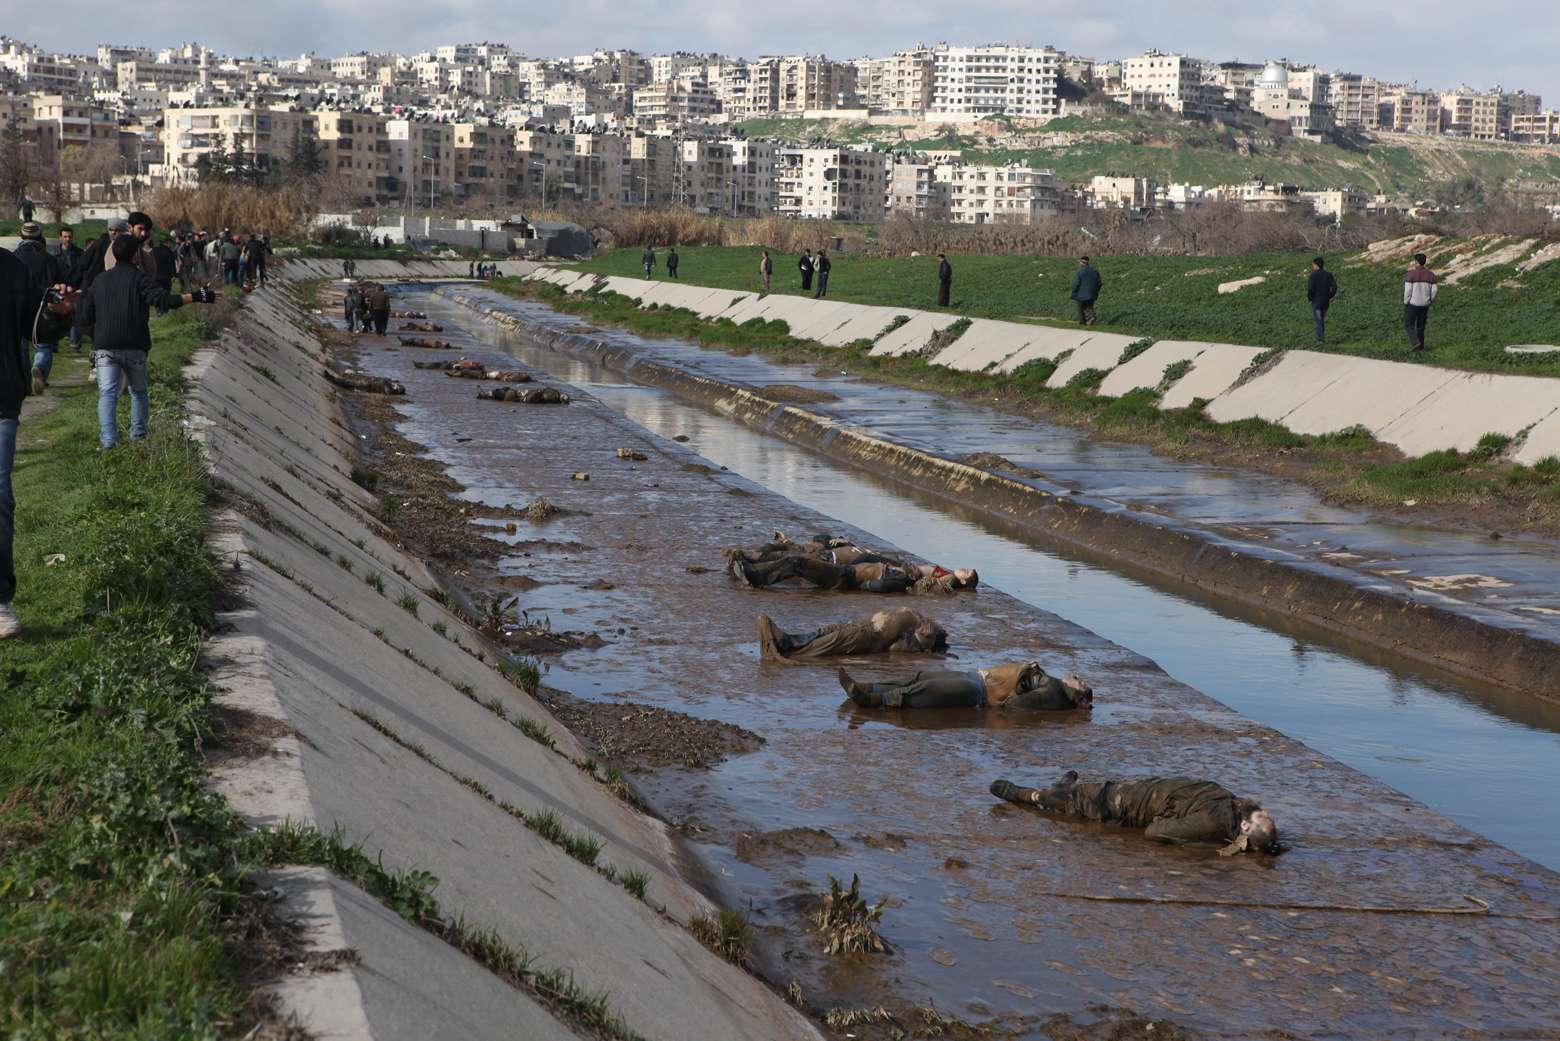 Syria: the story behind one of the most shocking images of the war Why did the bodies of 110 men suddenly wash up in the river running through Aleppo city six weeks ago? A Guardian investigation found out